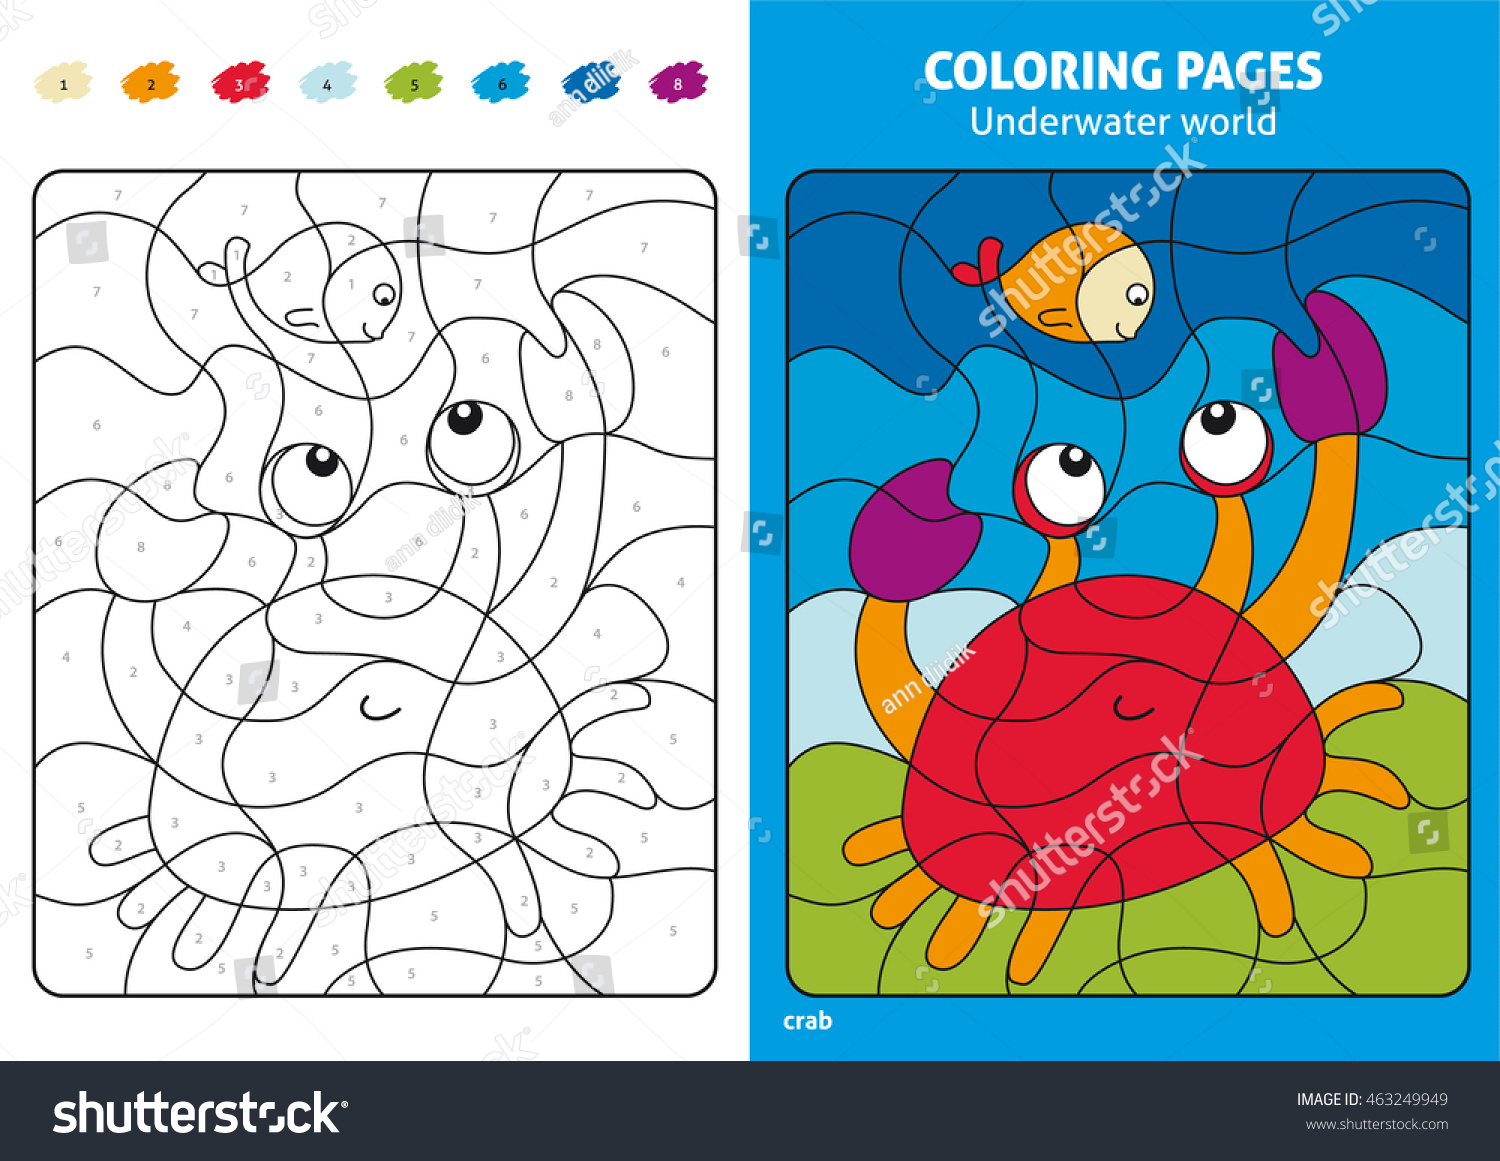 Underwater World Coloring Page Kids Fish Stock Vector (Royalty Free ...